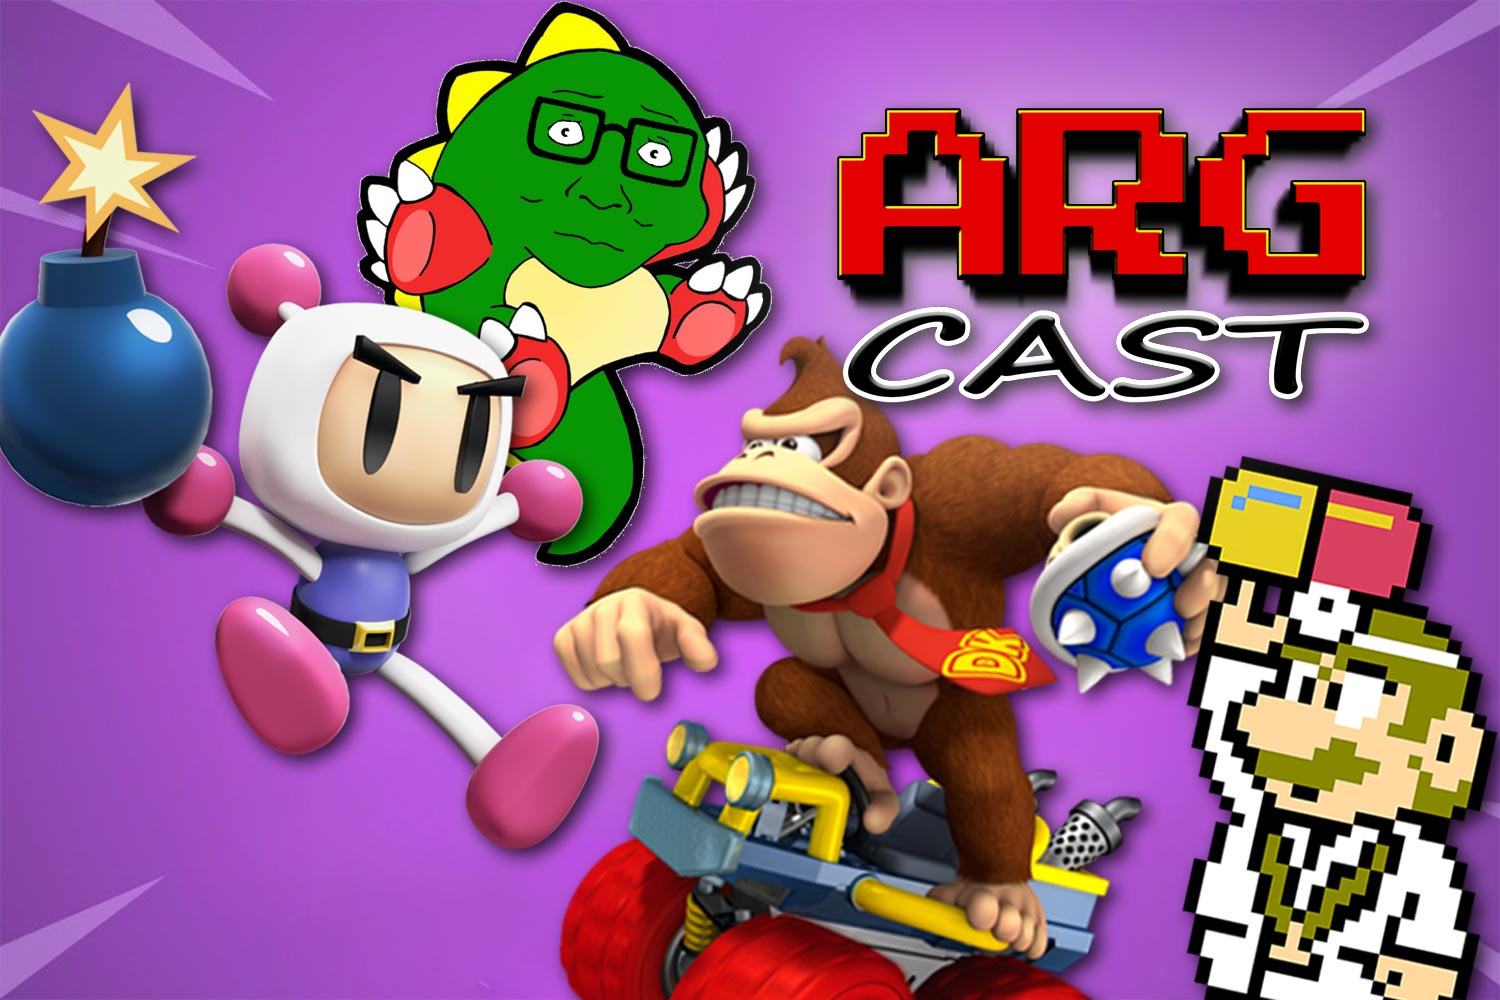 ARGcast #153: Battle Royale Retro Games with Tony and Andre